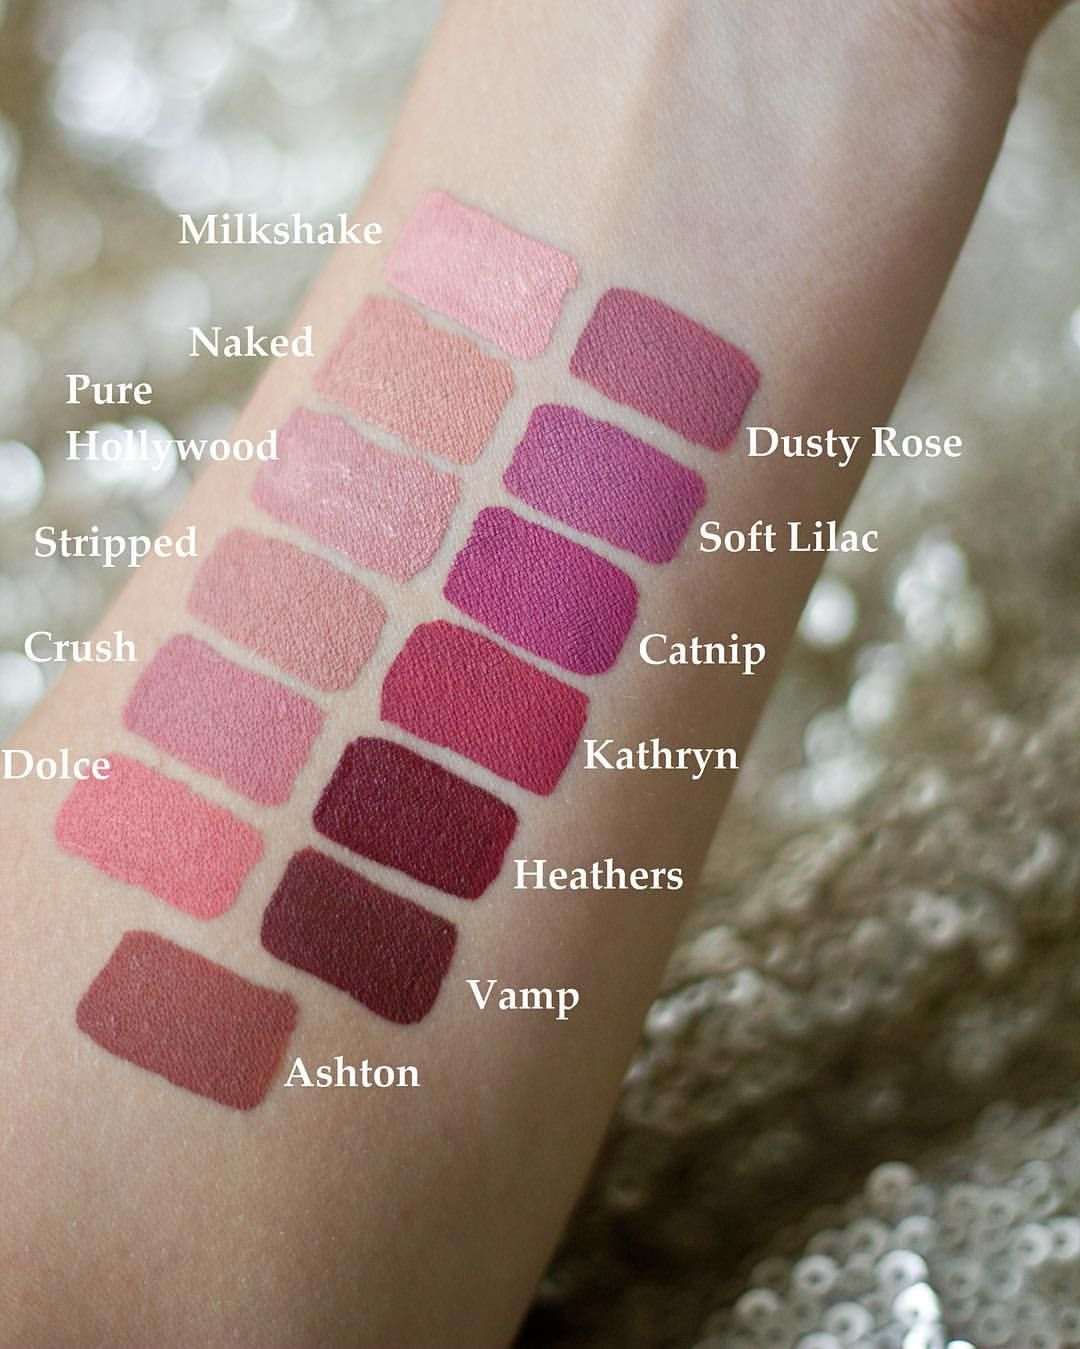 anastasia beverly hills liquid lipstick swatches make up must haves pinterest anastasia. Black Bedroom Furniture Sets. Home Design Ideas